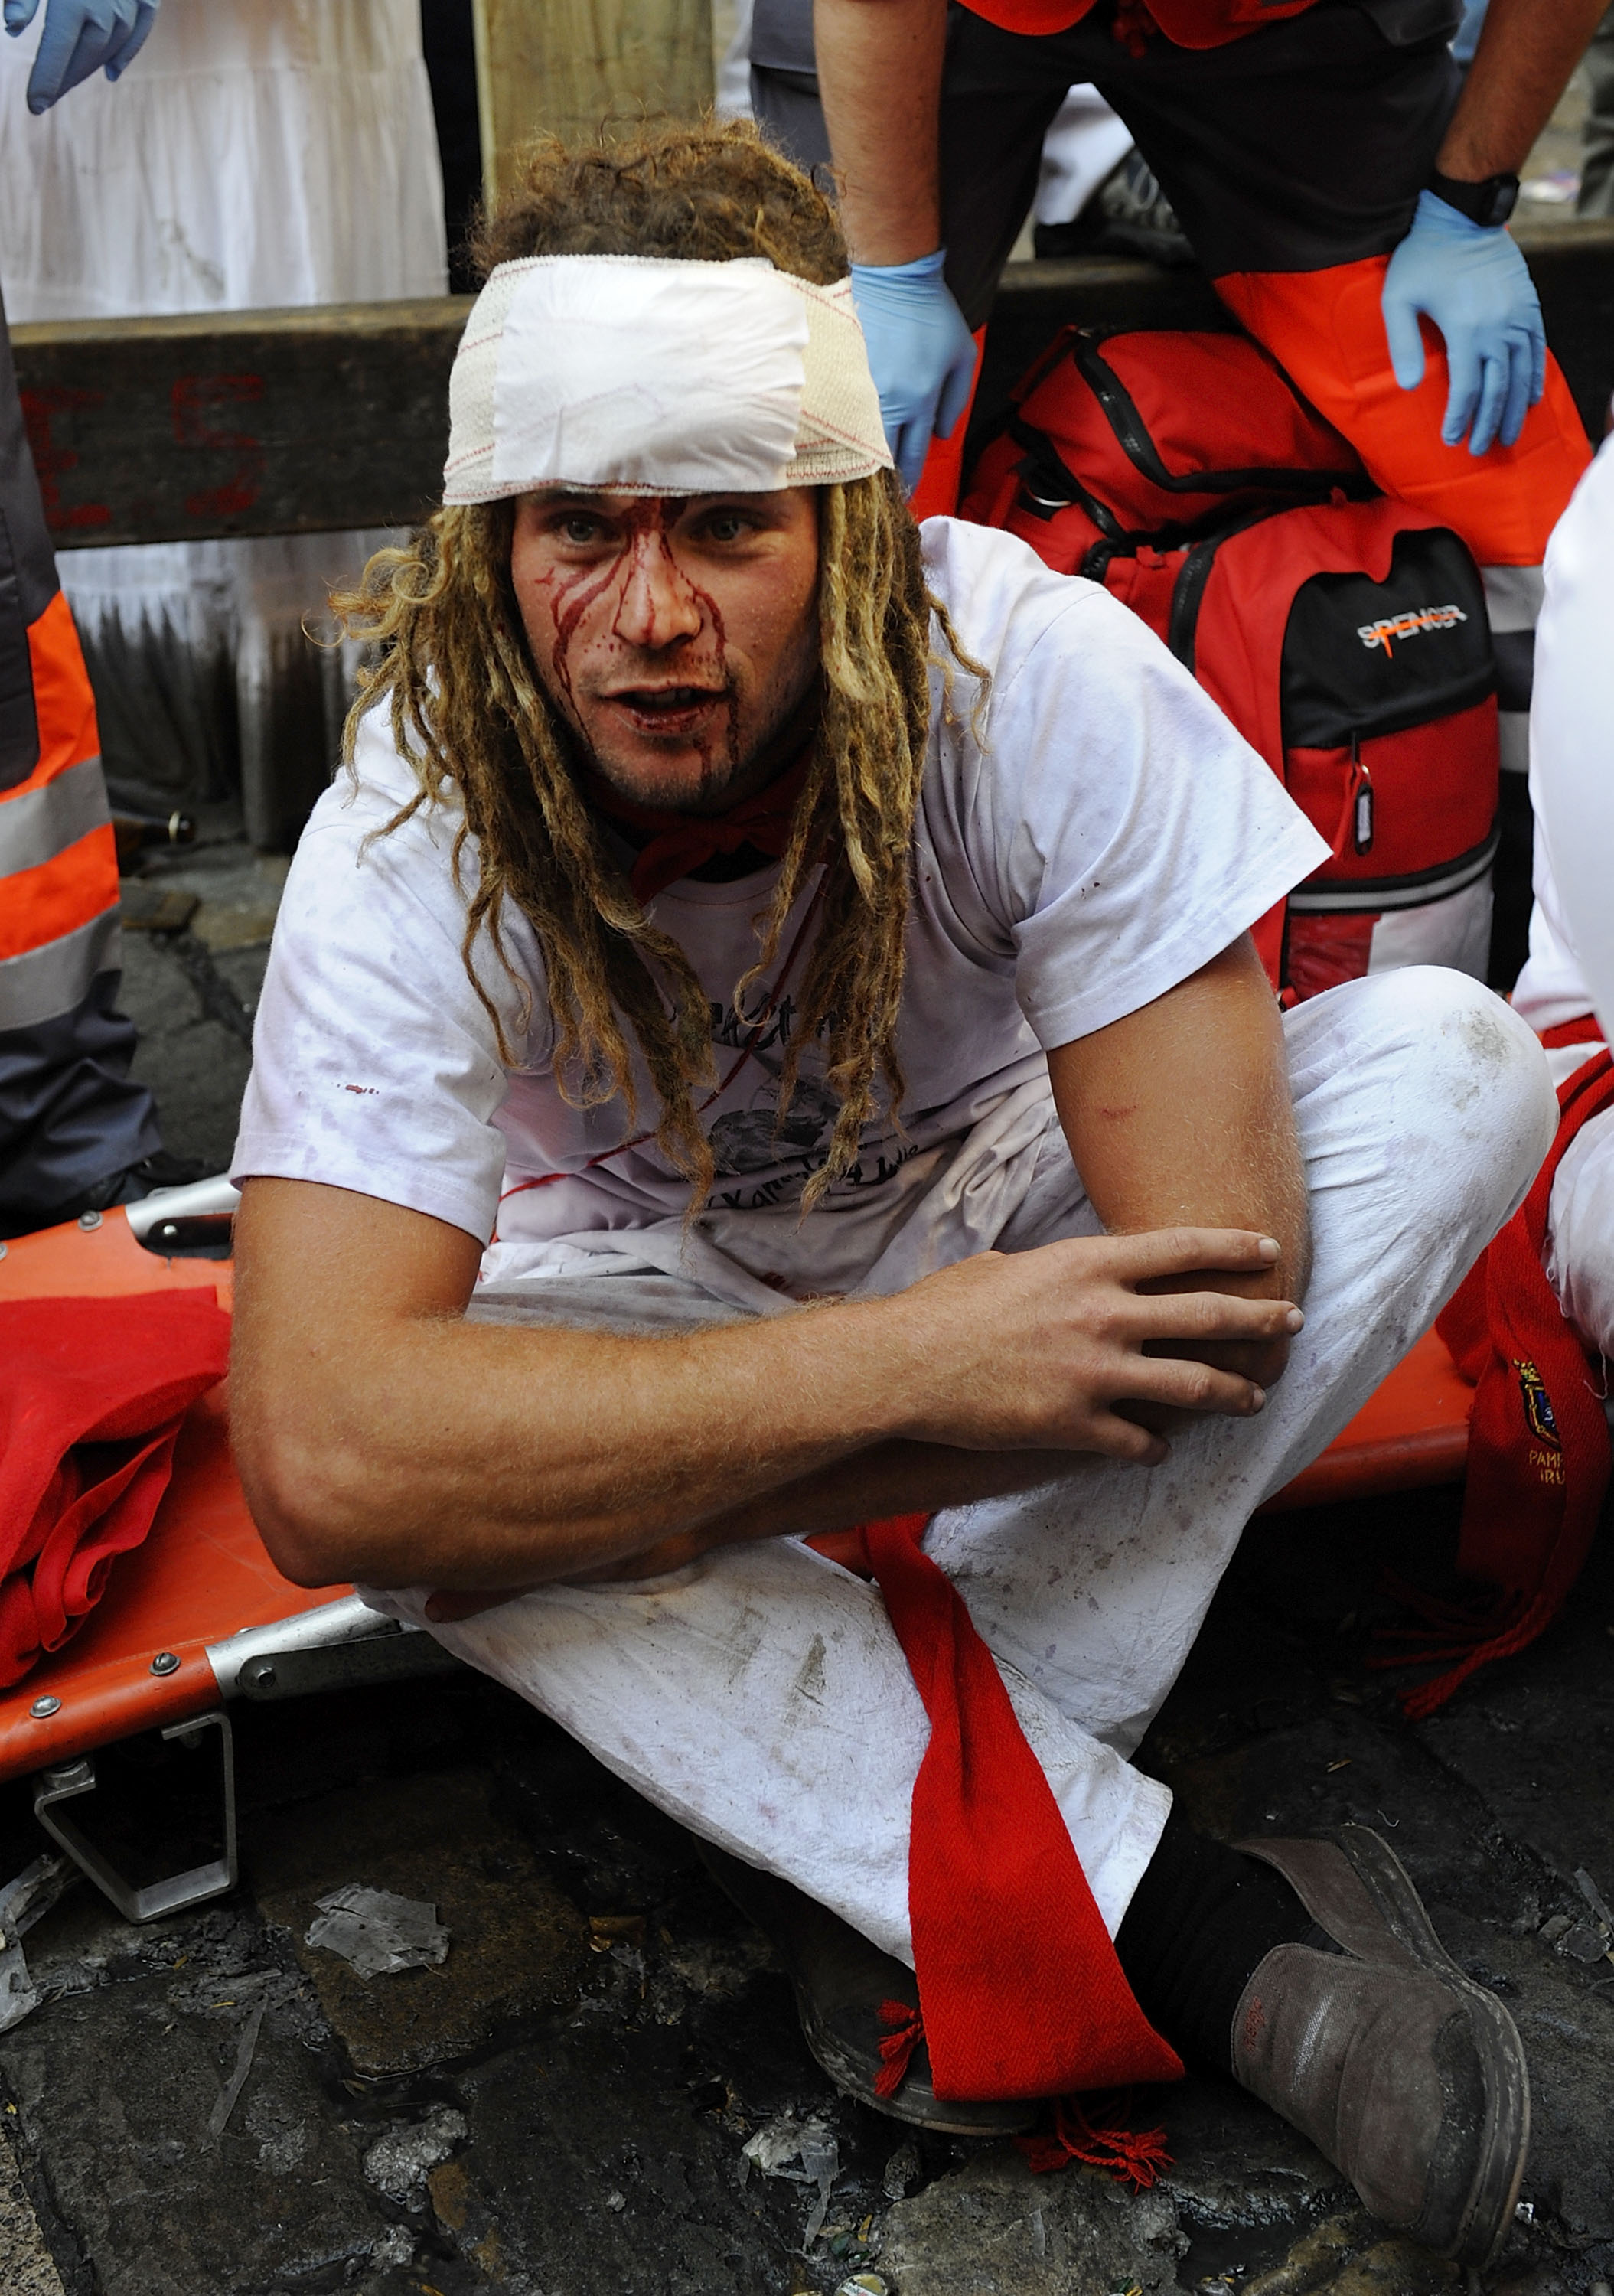 New Zealand participant is helped by the Red Cross.